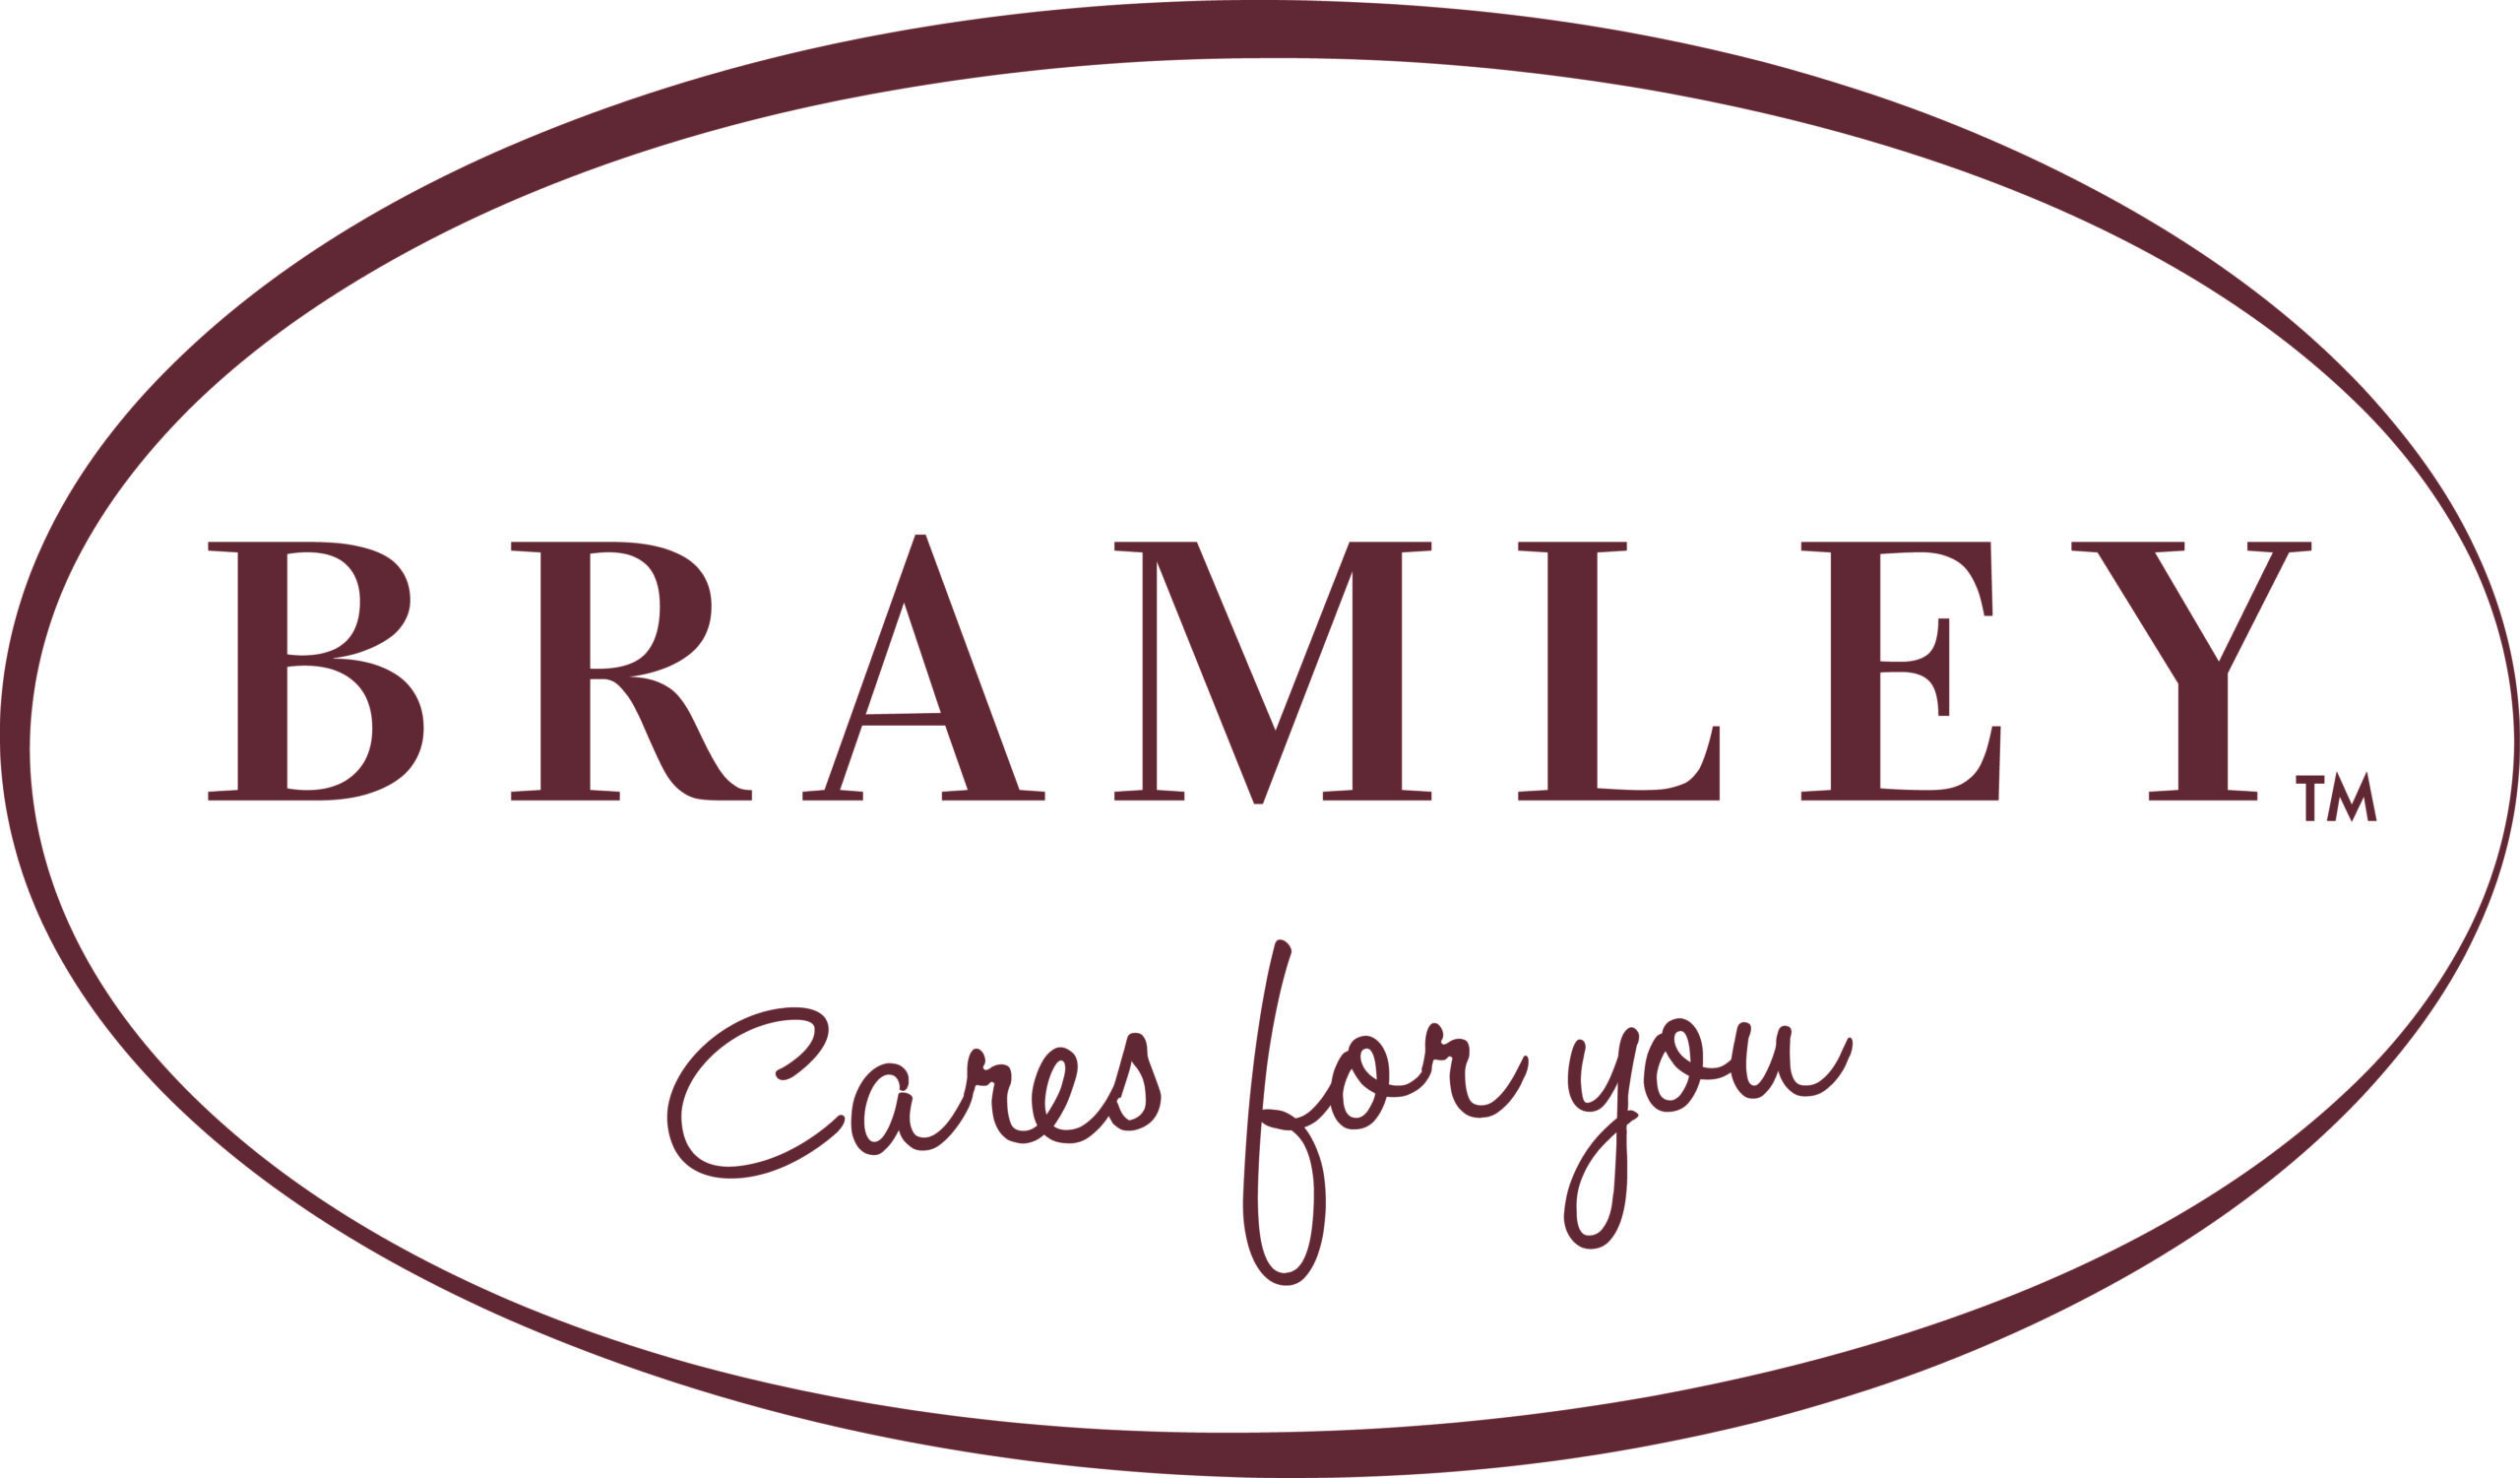 Bramley Cosmetics